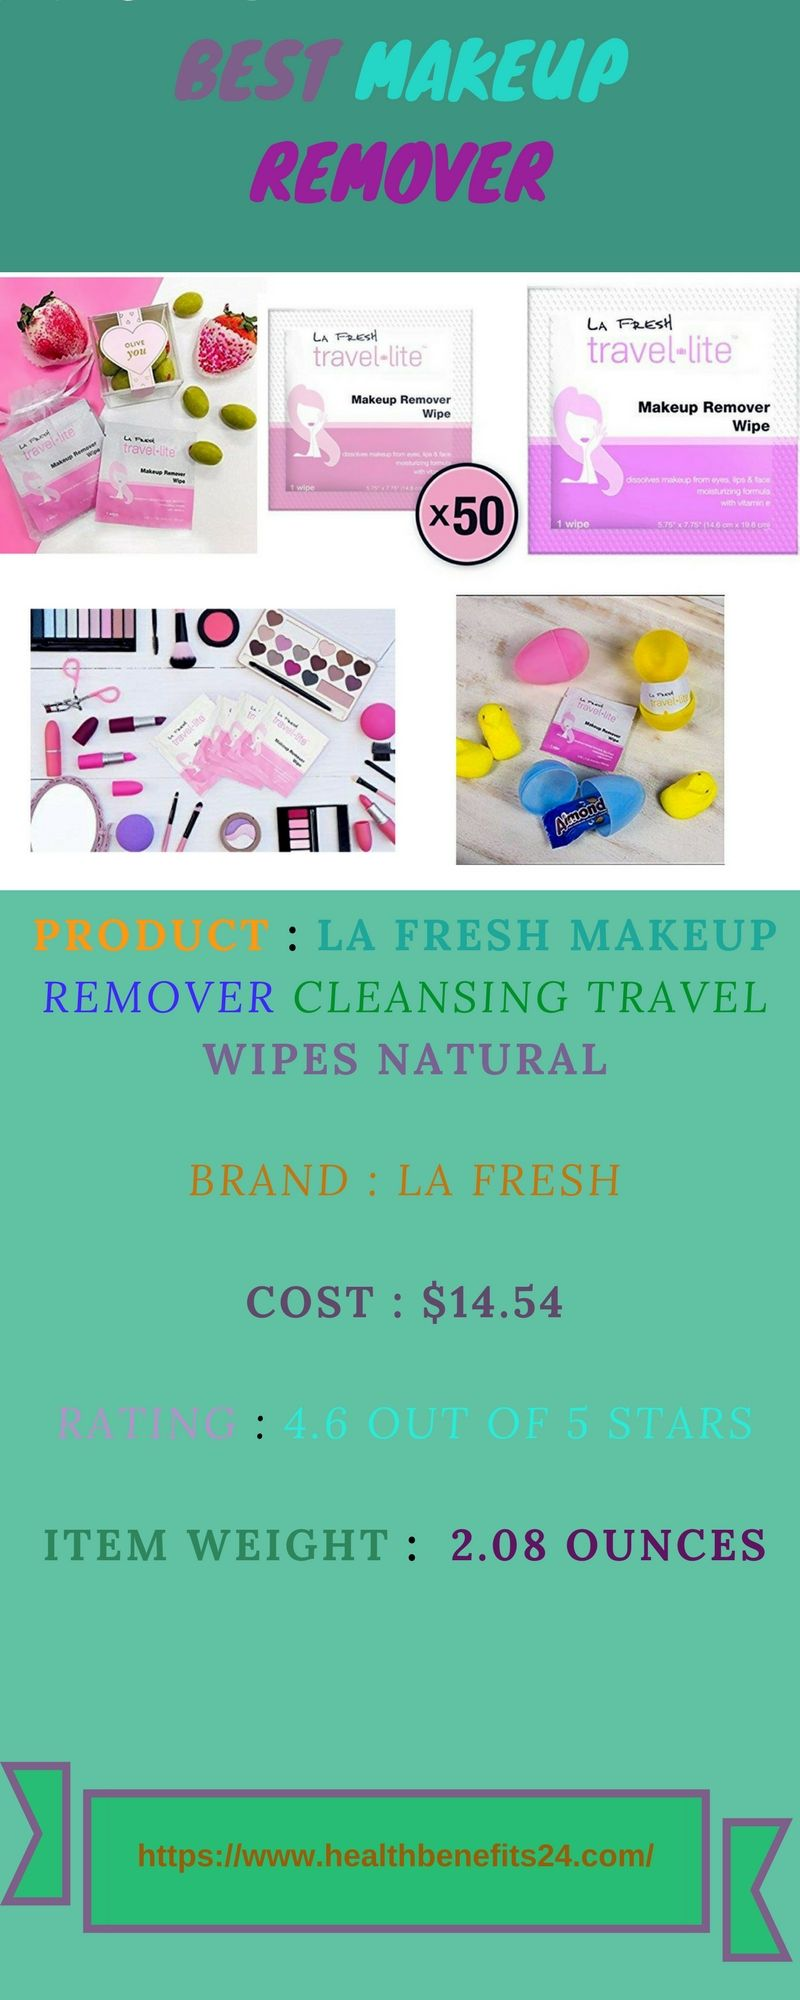 Best makeup remover wipes Makeup remover wipes, Best